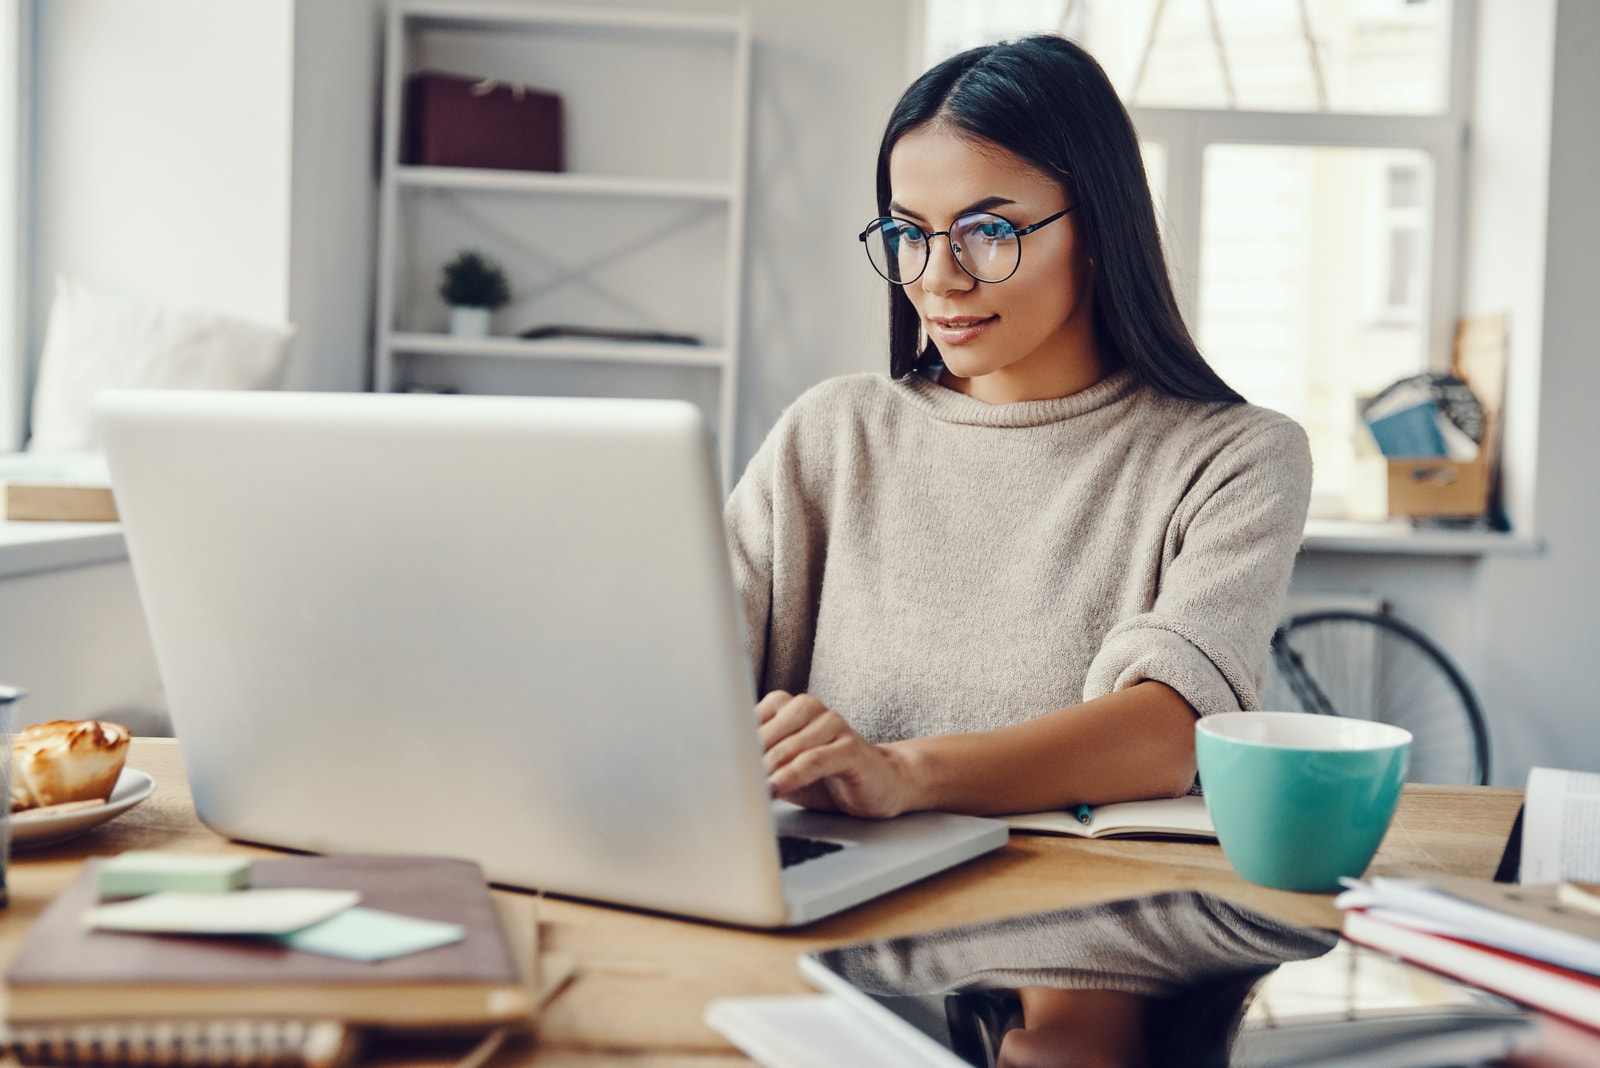 a woman sits at a laptop and works